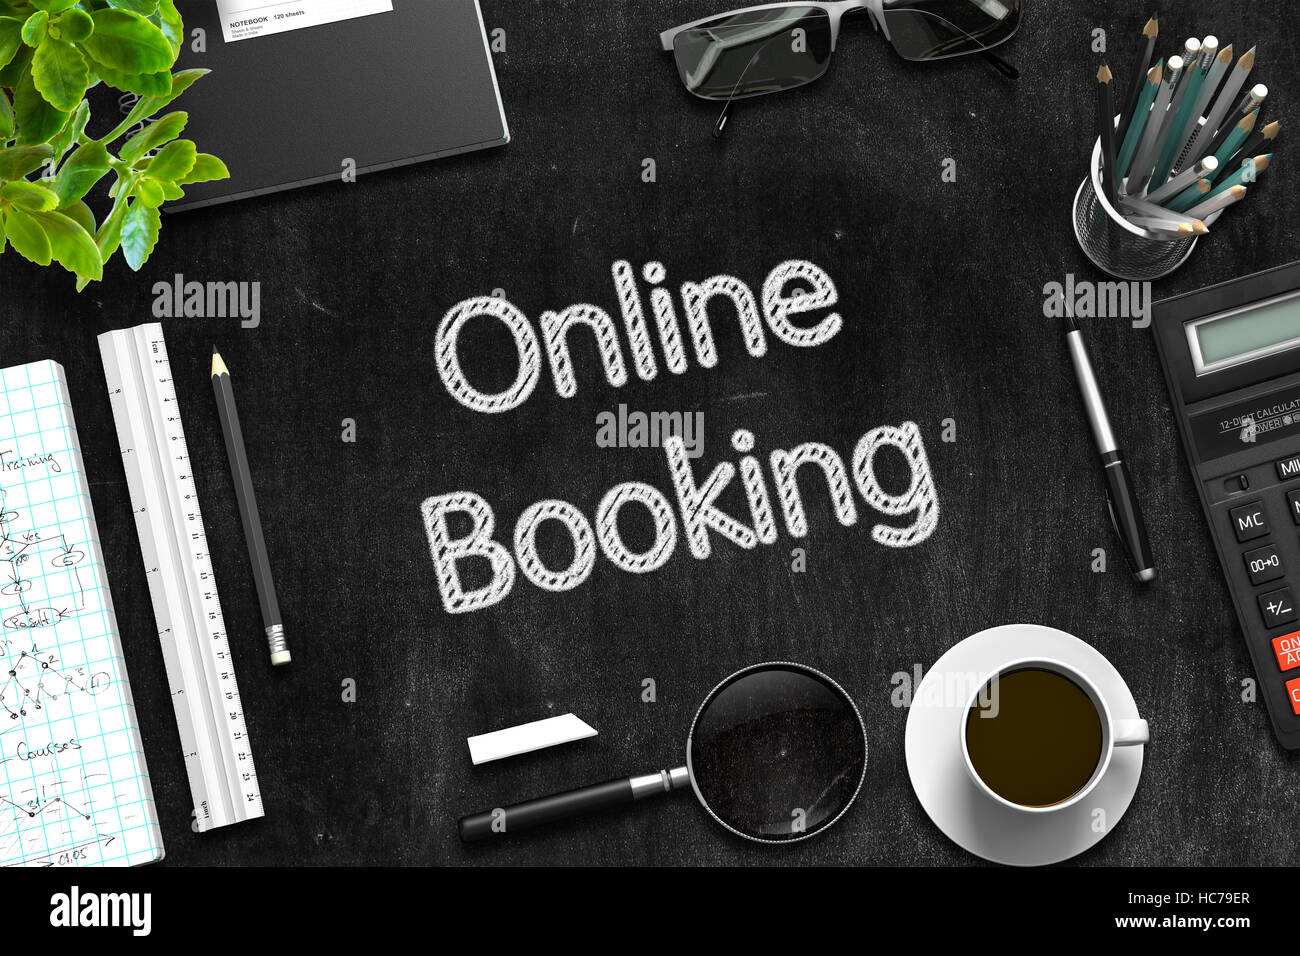 Online Booking Concept on Black Chalkboard. 3D Rendering. - Stock Image